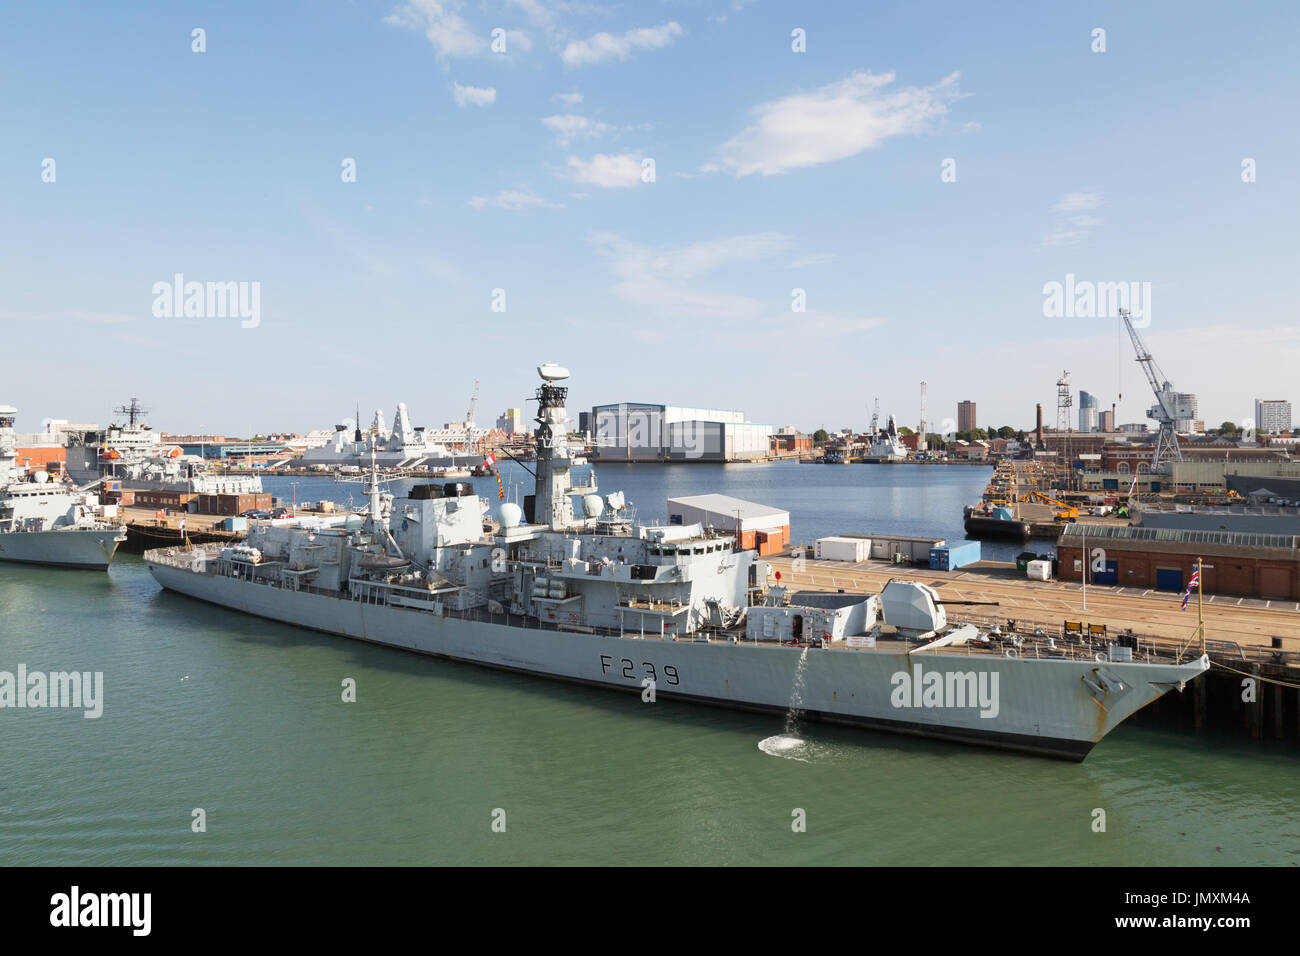 HMS Richmond F239, a type 23 frigate, moored in Portsmouth Naval Dockyard, Portsmouth UK - Stock Image